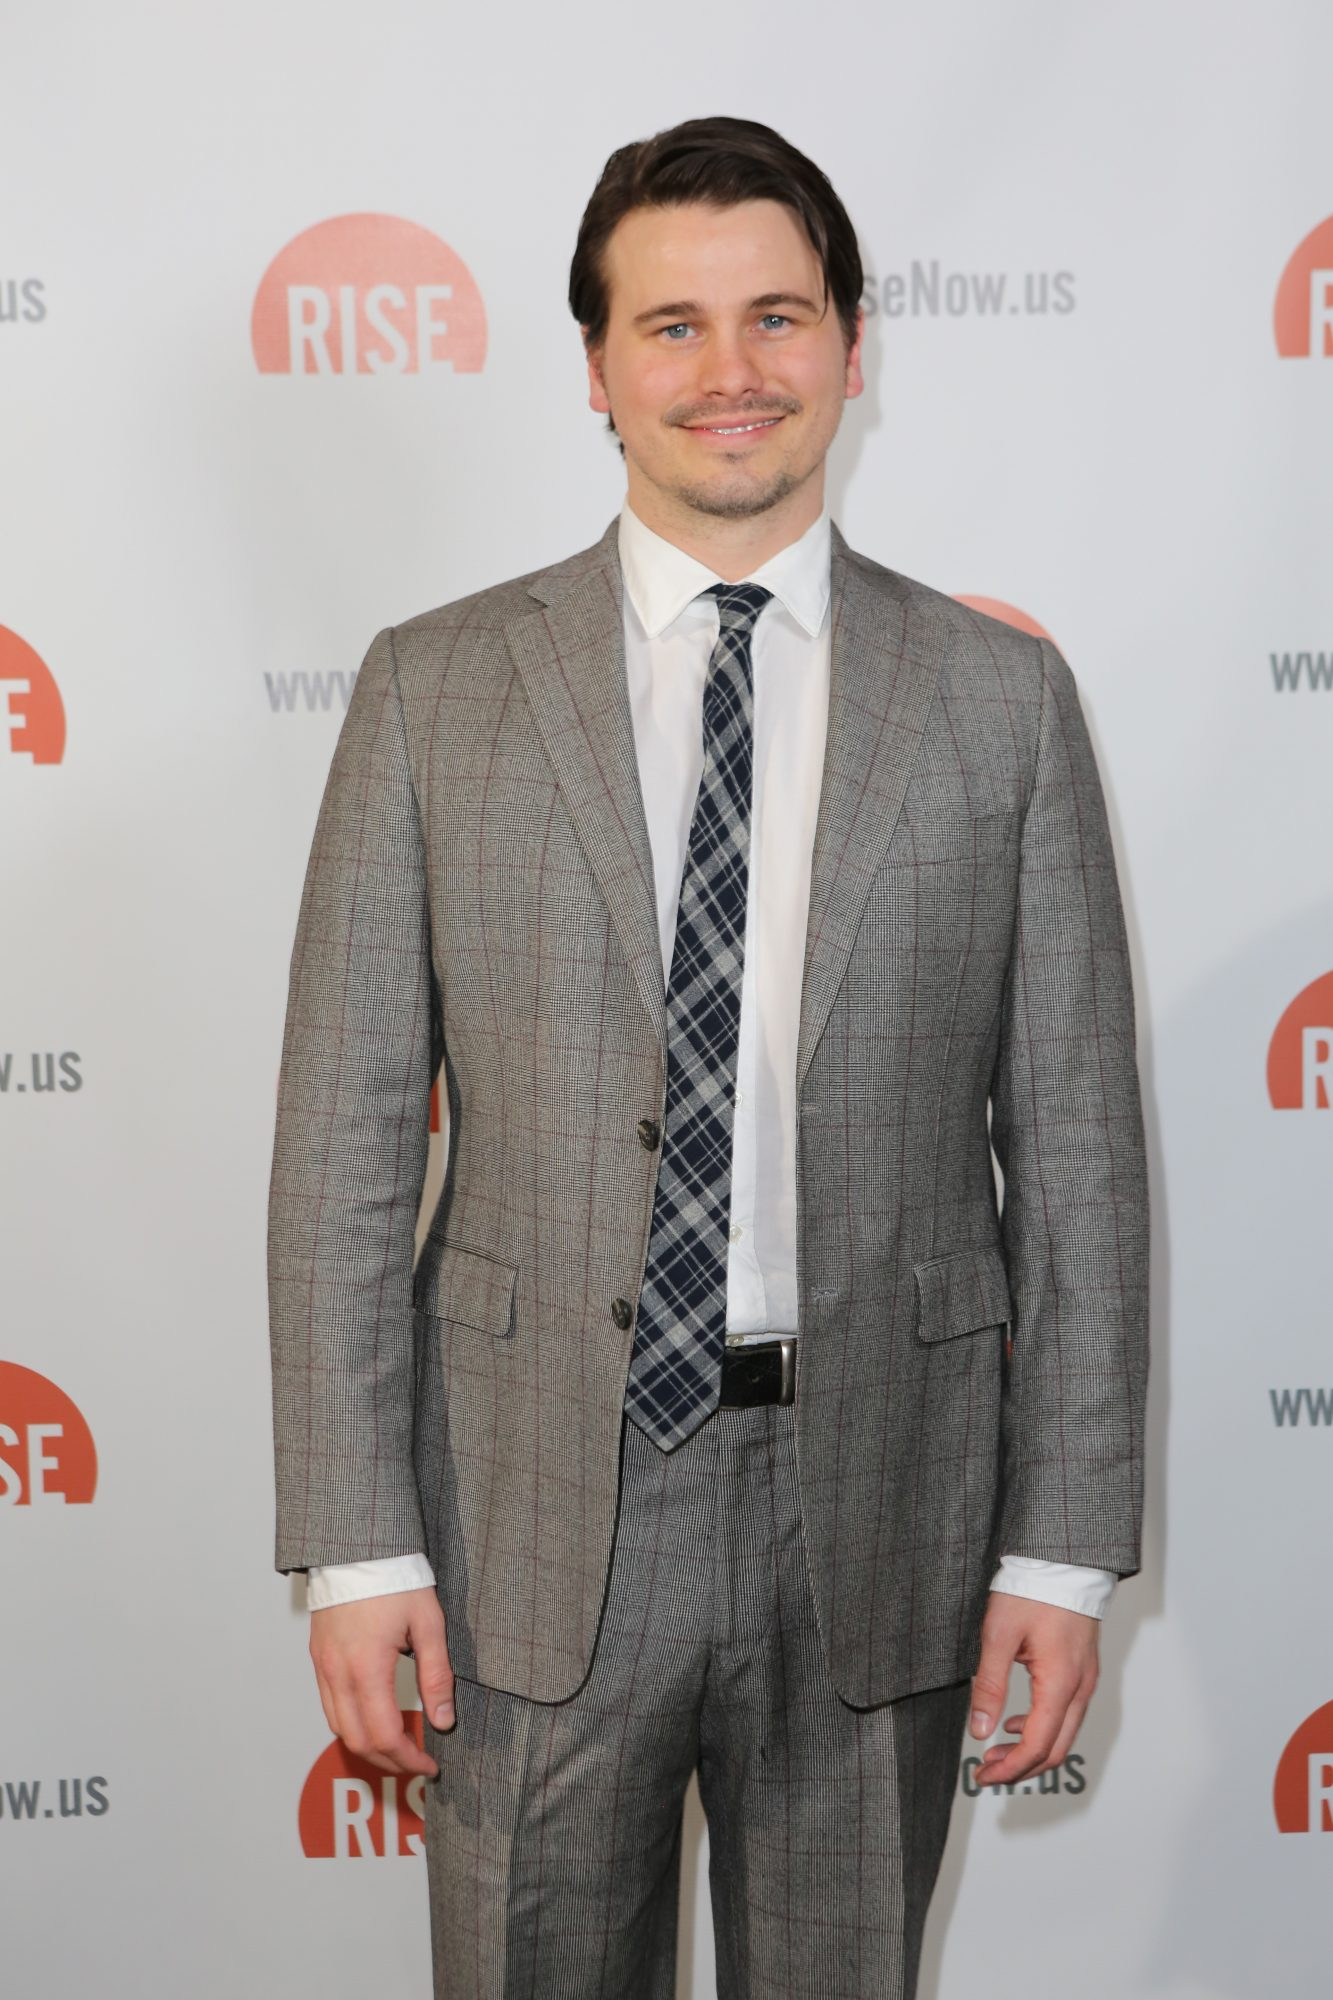 BEVERLY HILLS, CALIFORNIA - MARCH 12: Jason Ritter attends the Rise Fundraiser: 'Everything I Ever Wanted To Tell My Daughter About Men' Play Reading at Wallis Annenberg Center for the Performing Arts on March 12, 2019 in Beverly Hills, California. (Photo by Tasia Wells/Getty Images for Rise with Everything )